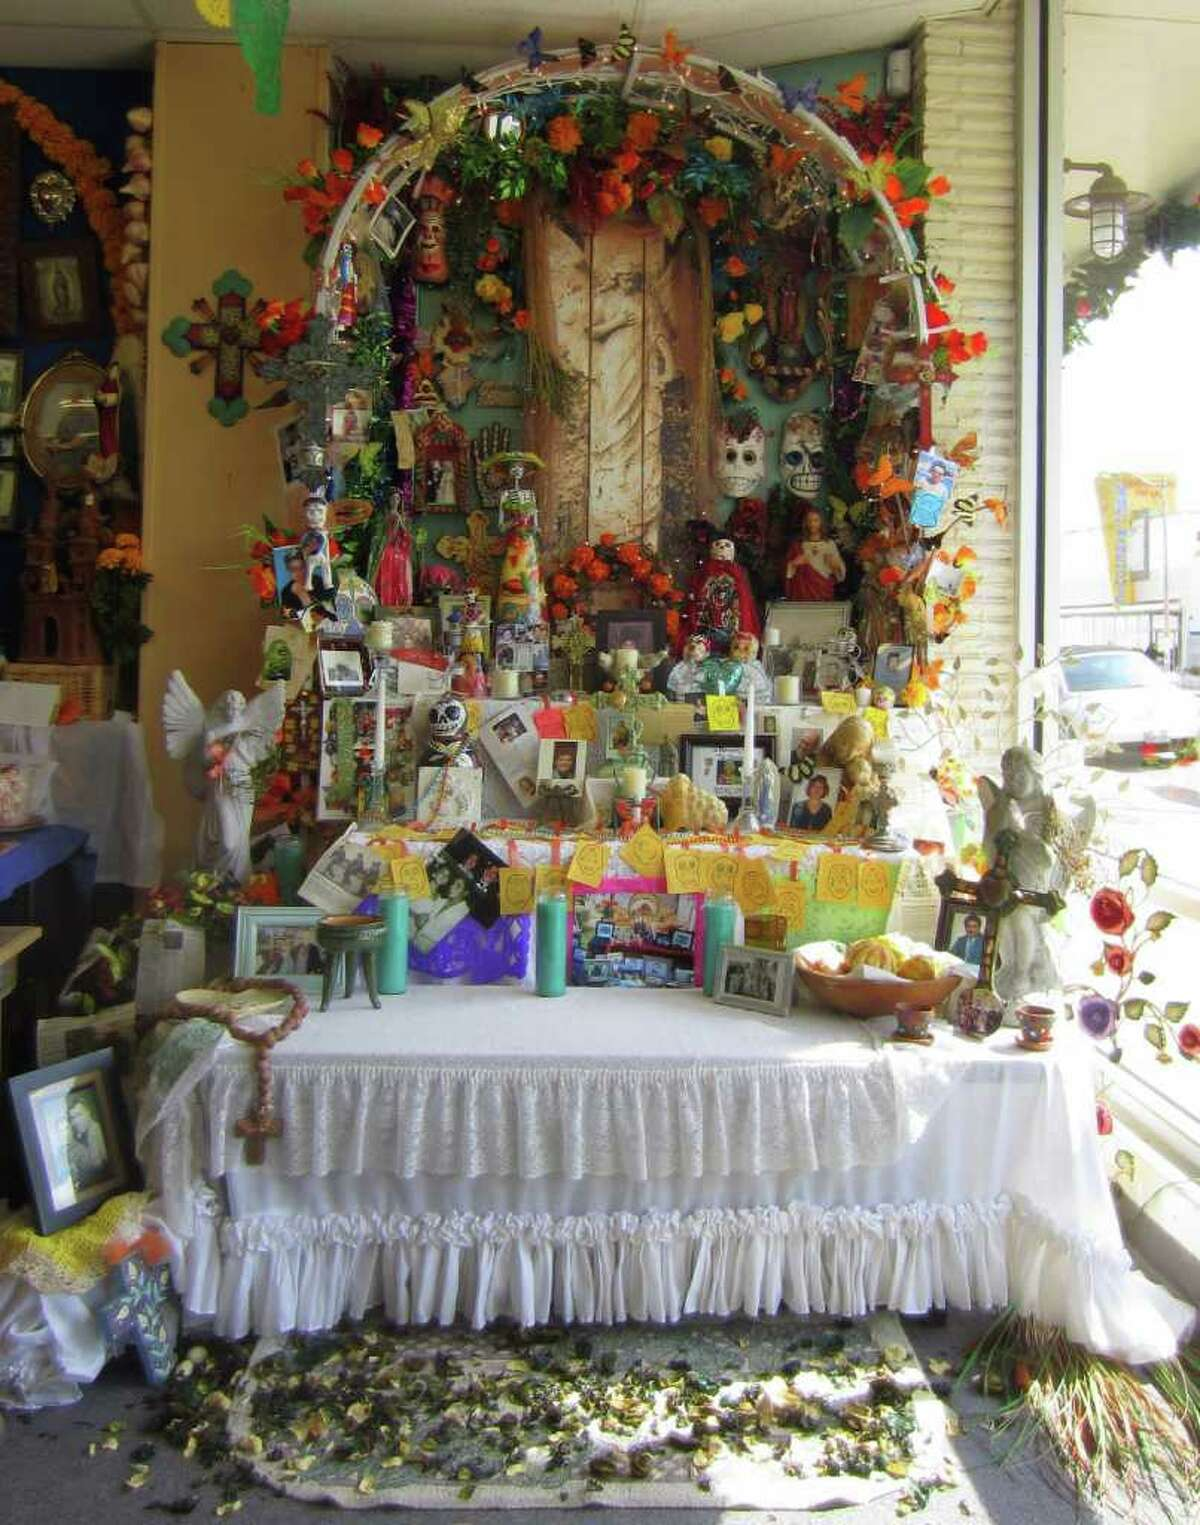 Artist Judy Turner designed a community Day of the Dead altar on view at Casa Ramirez. Visitors are invited to leave tributes to the deceased.